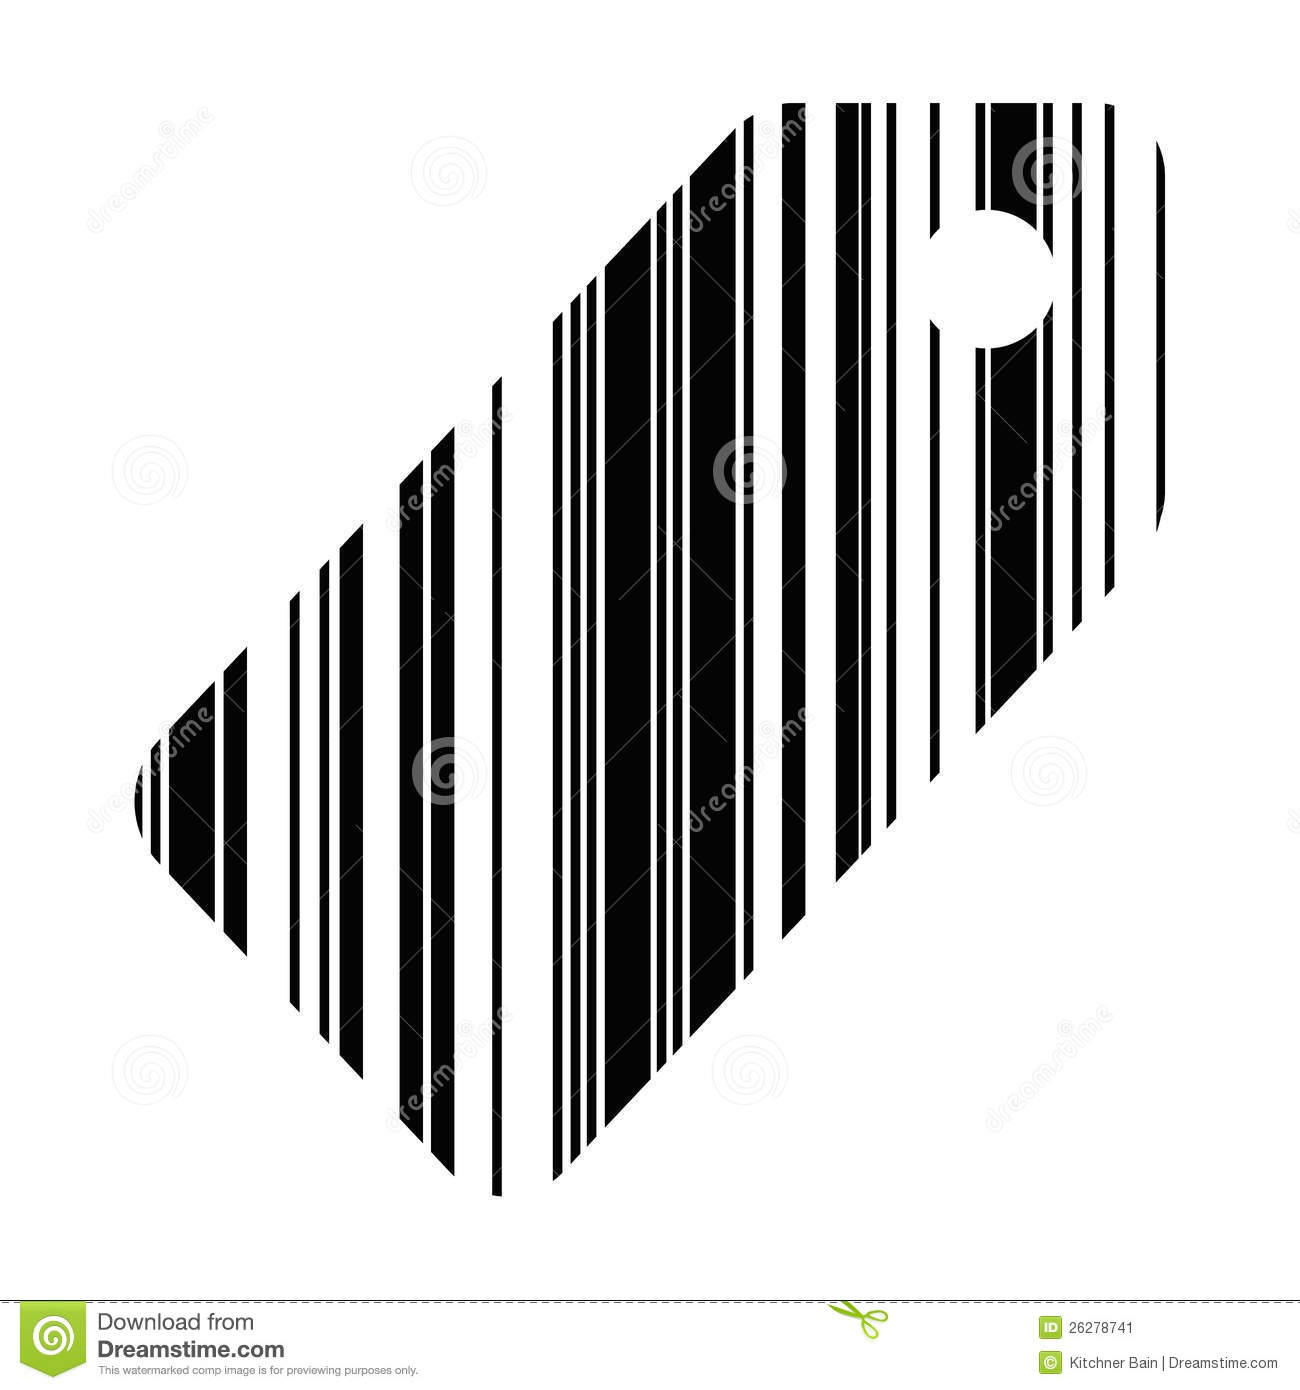 how to read a barcode in c